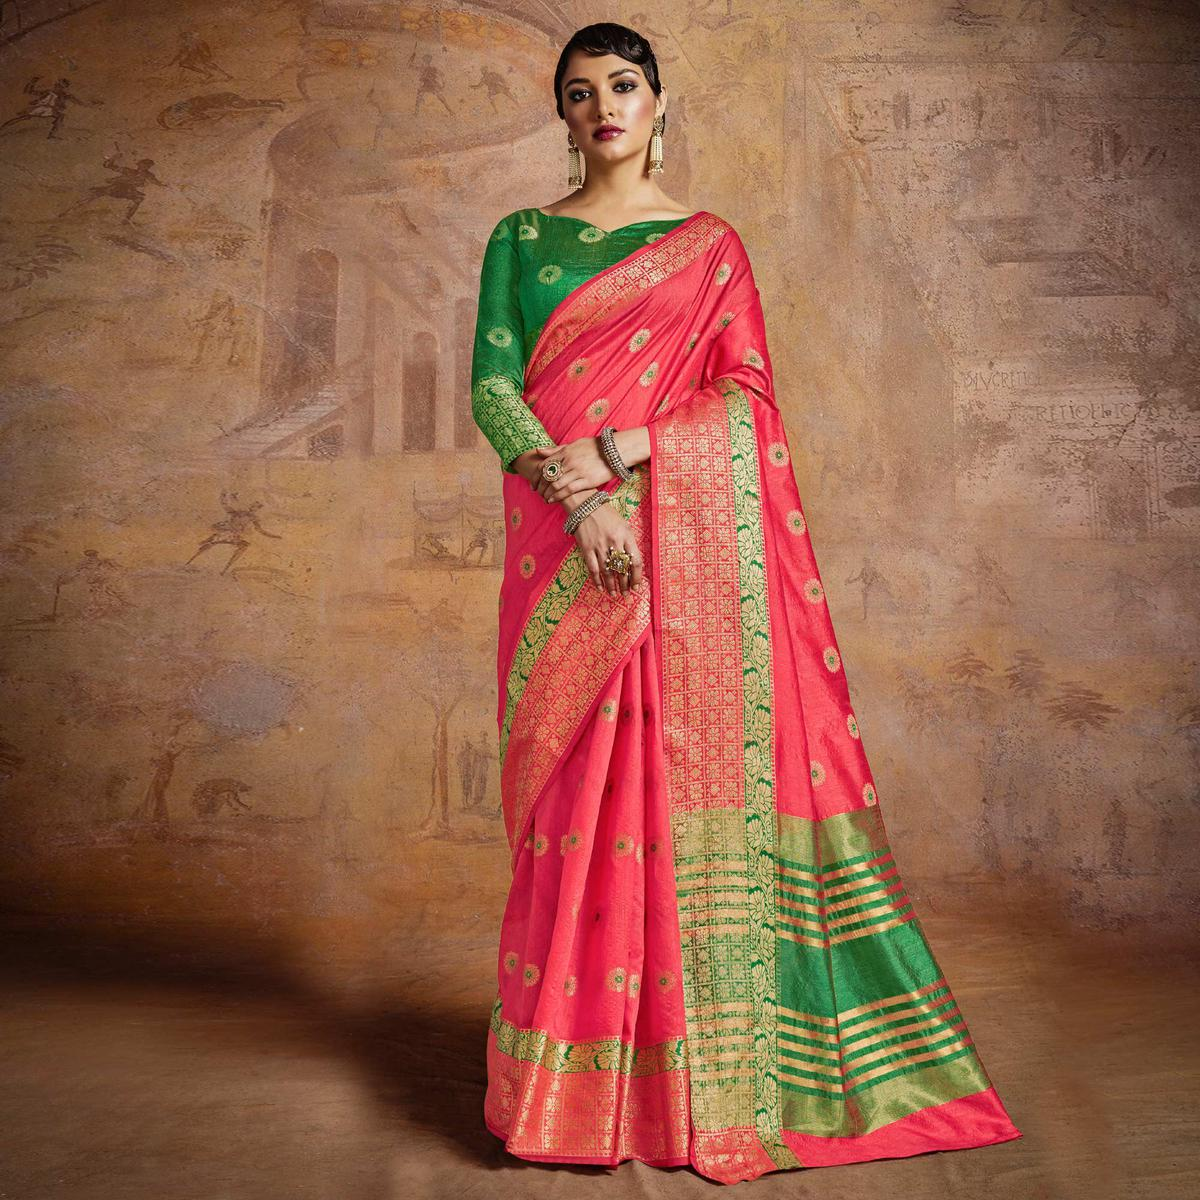 Dashing Coral Pink-Green Colored Festive Wear Woven Silk Saree